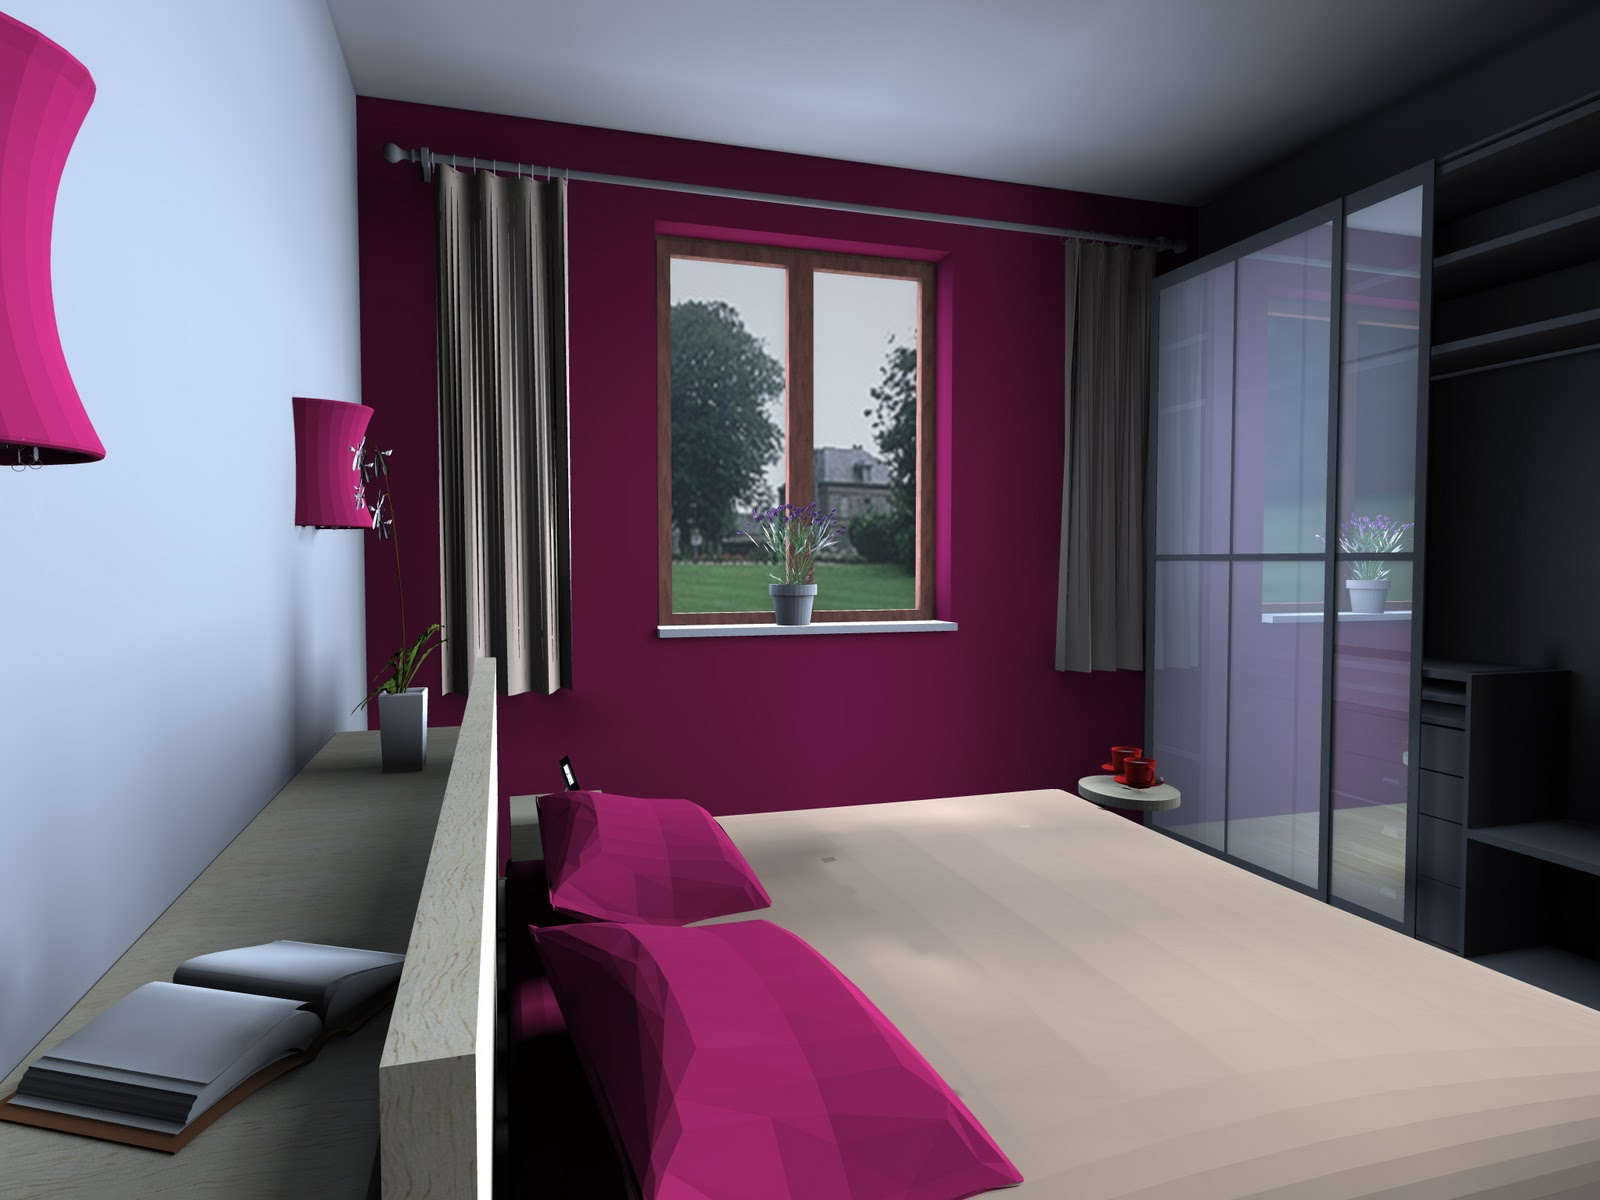 I d a 3 interior designers architects una camera - Pareti colorate per camerette ...